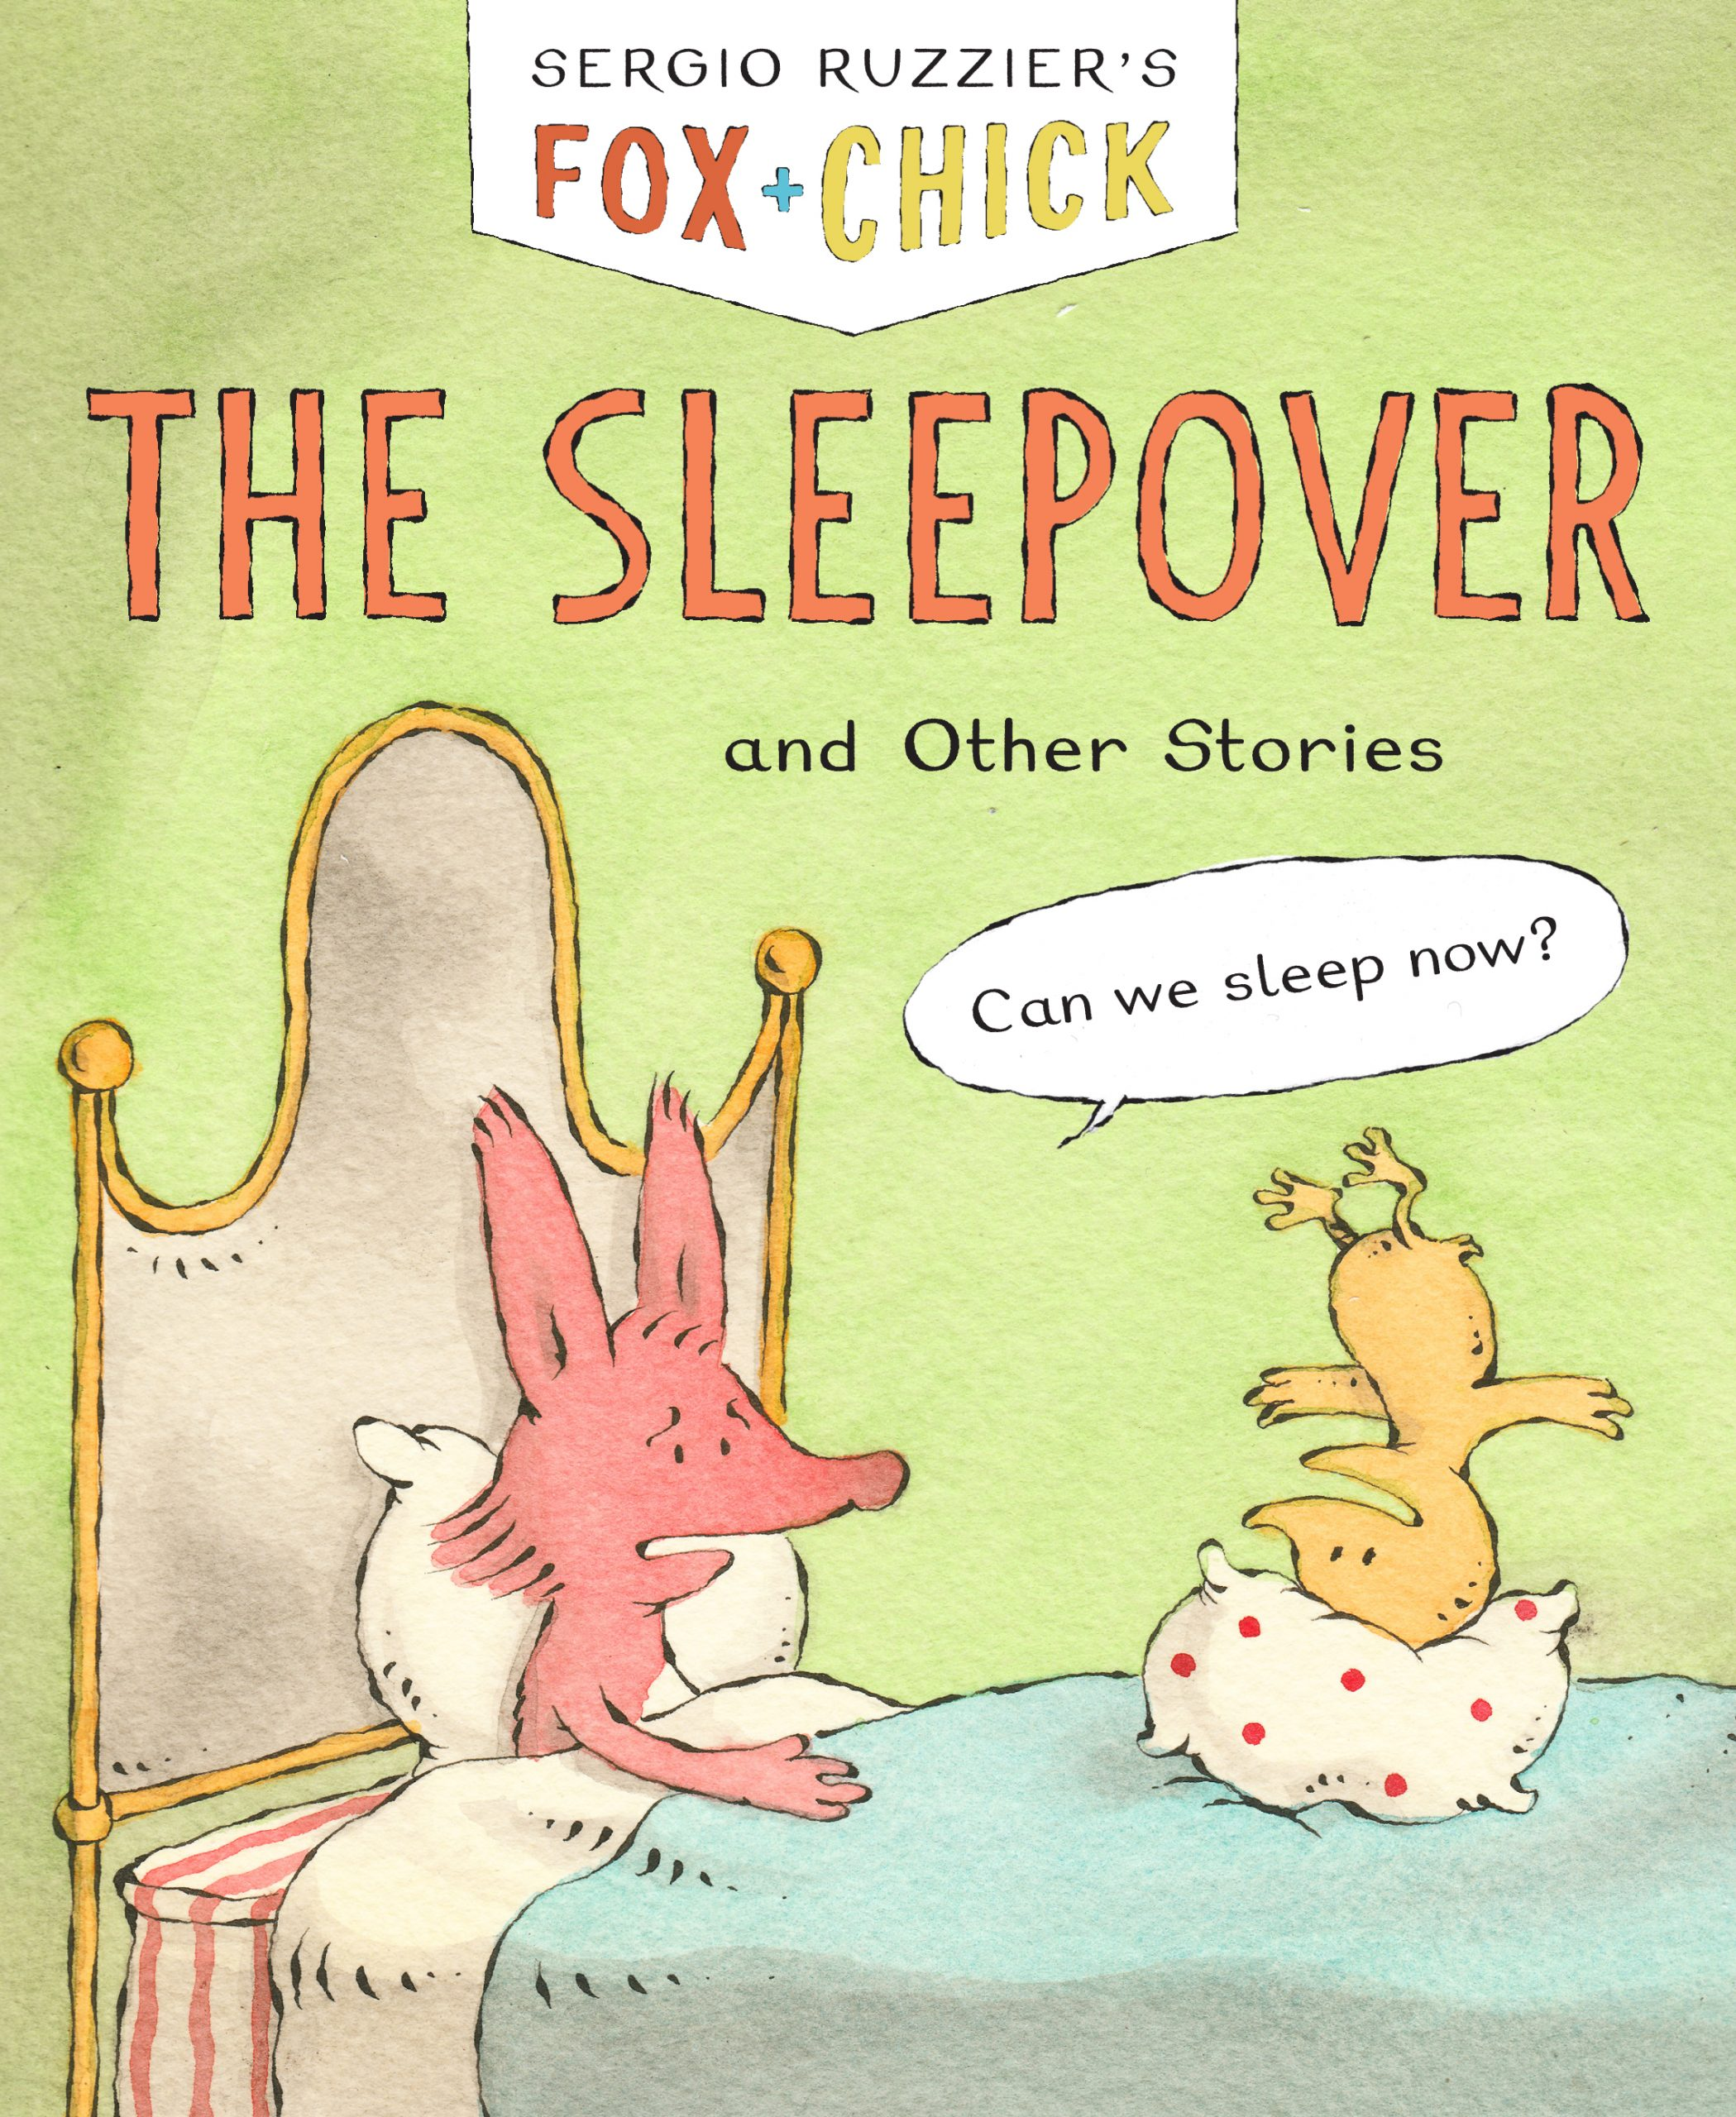 Fox+Chick: The Sleepover and Other Stories